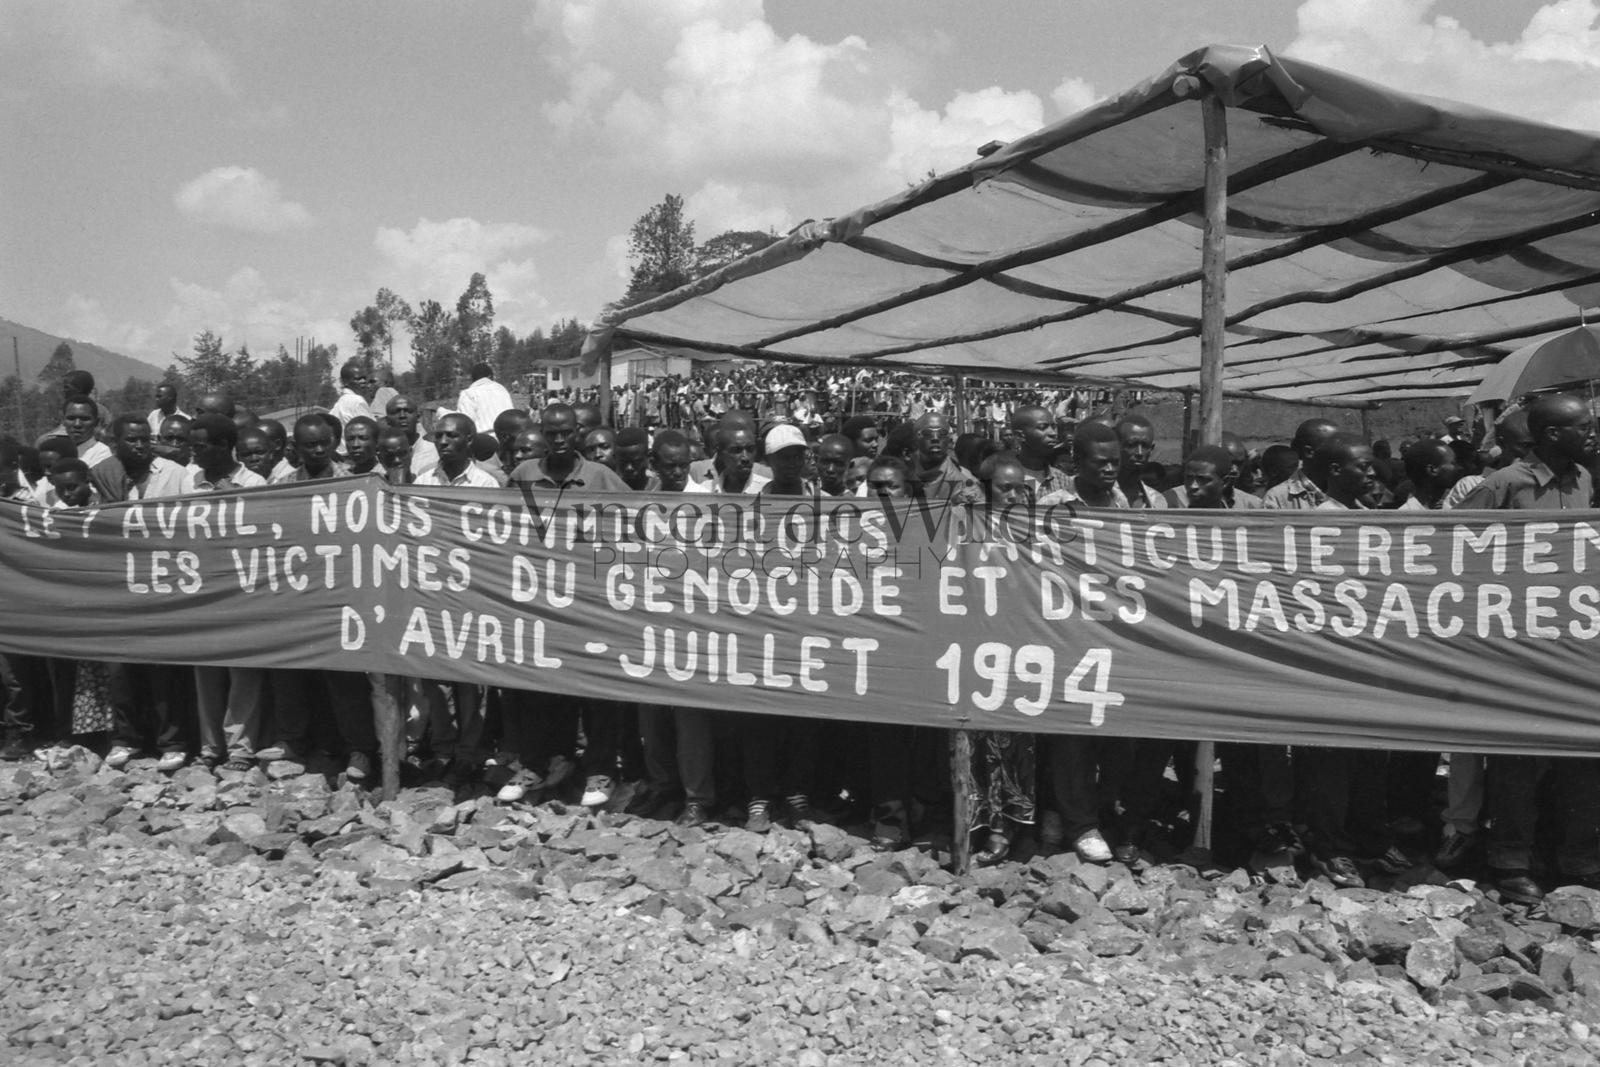 En Mémoire des Victimes d'Avril à Juillet 1994 -  In Memory of the Victims of April to July 1994